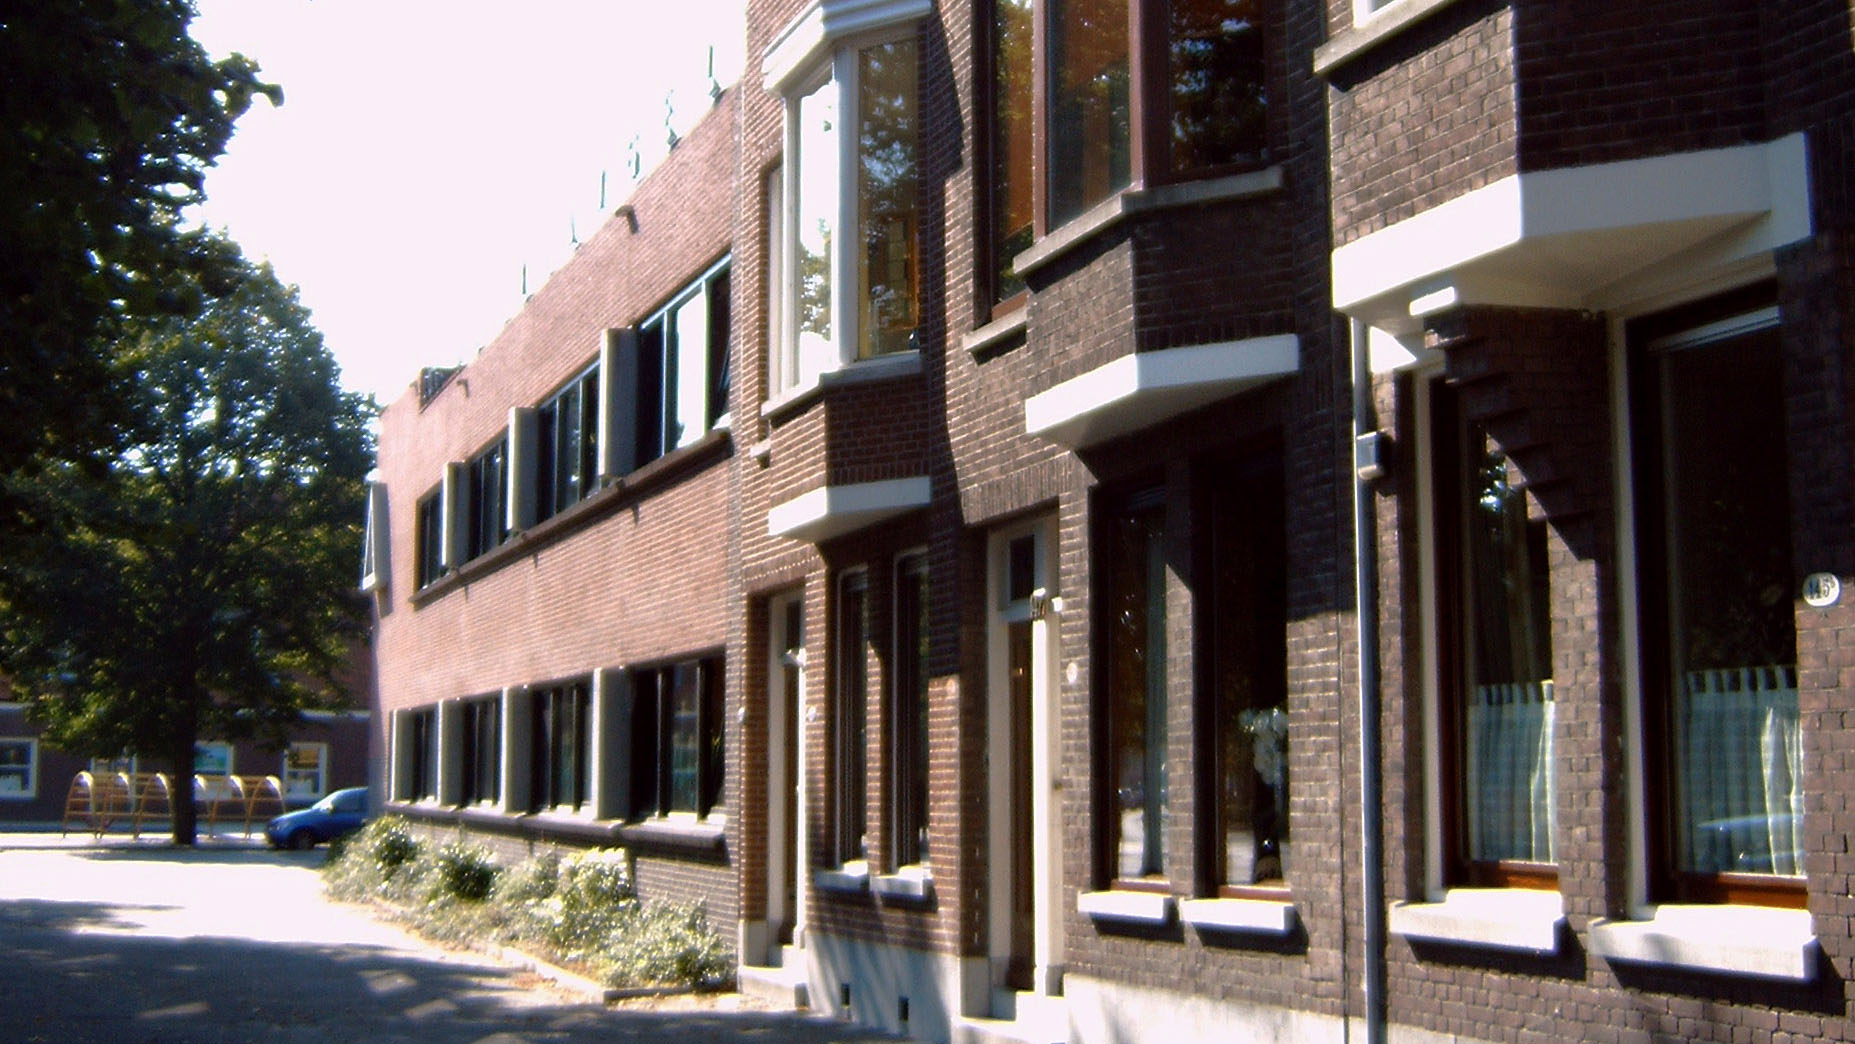 obs triangel rotterdam architect marja haring